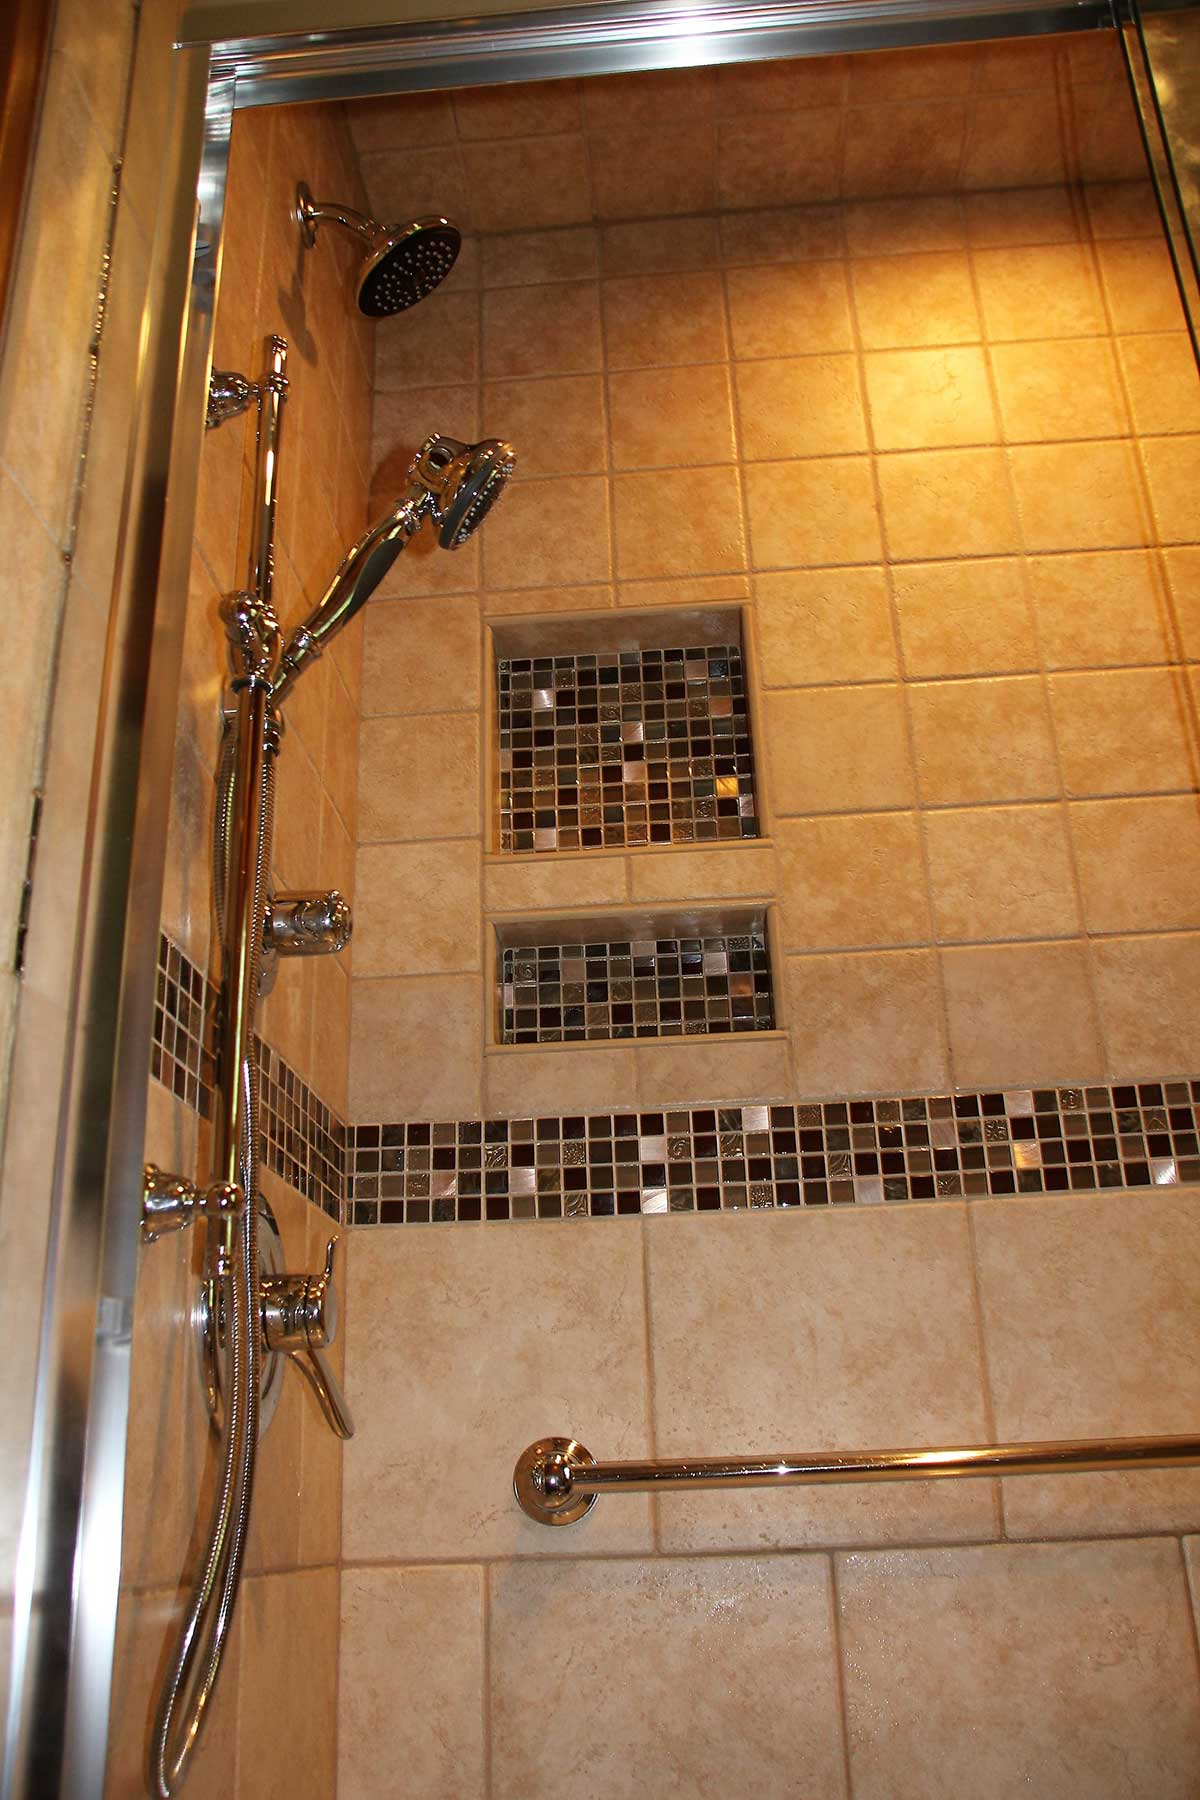 Another view of shower after remodeling